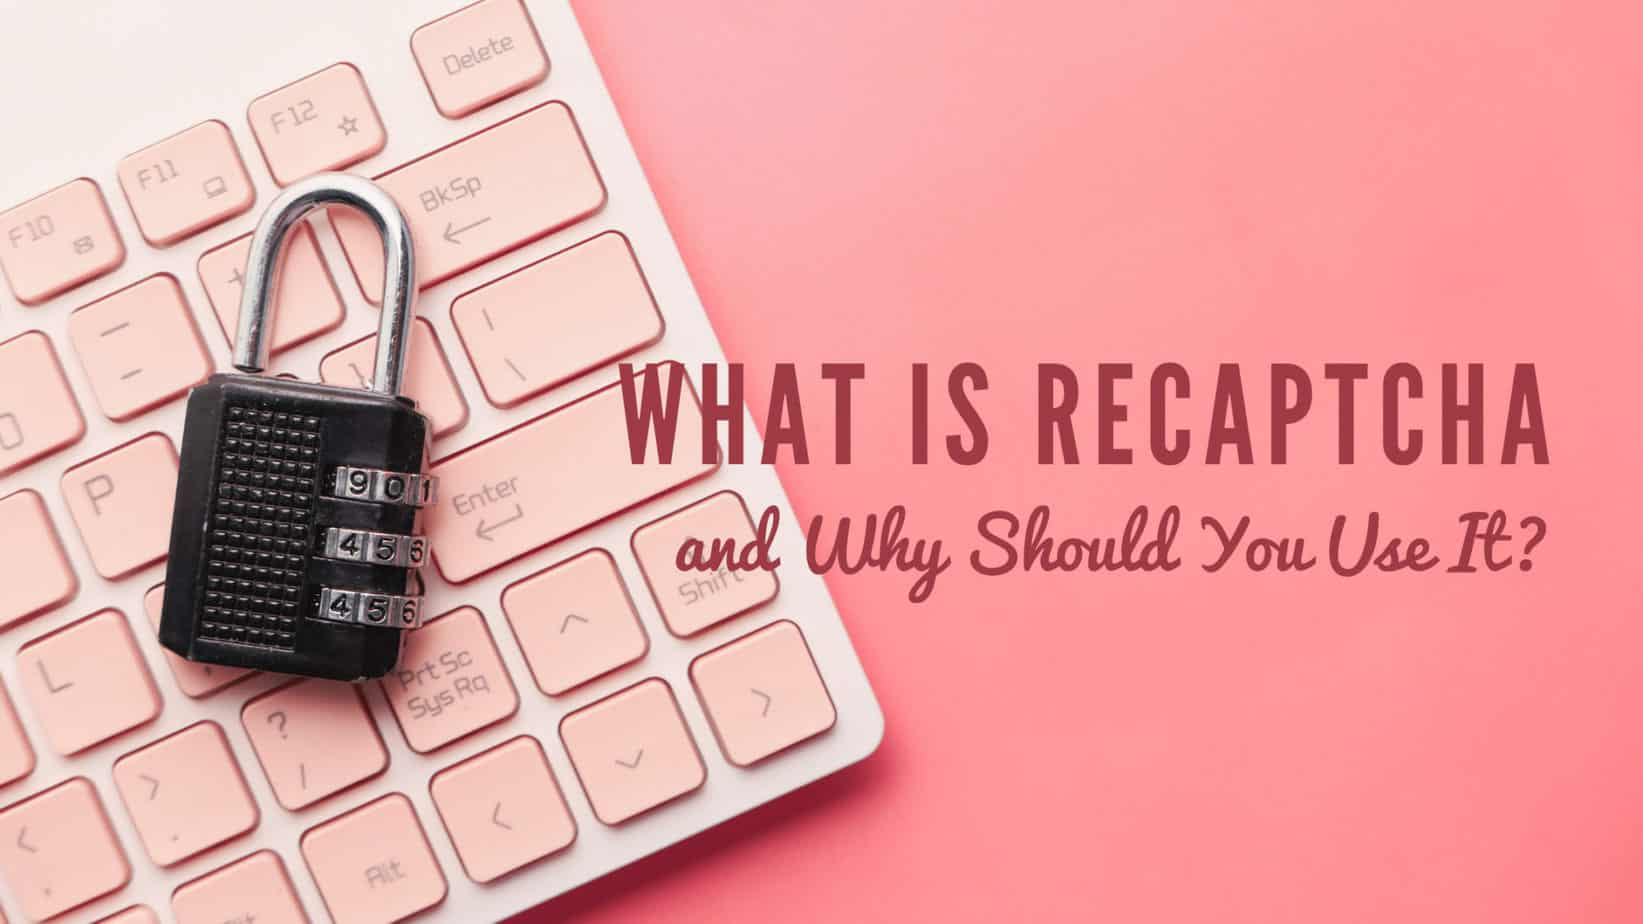 What is RECAPTCHA and Why Should You Use It